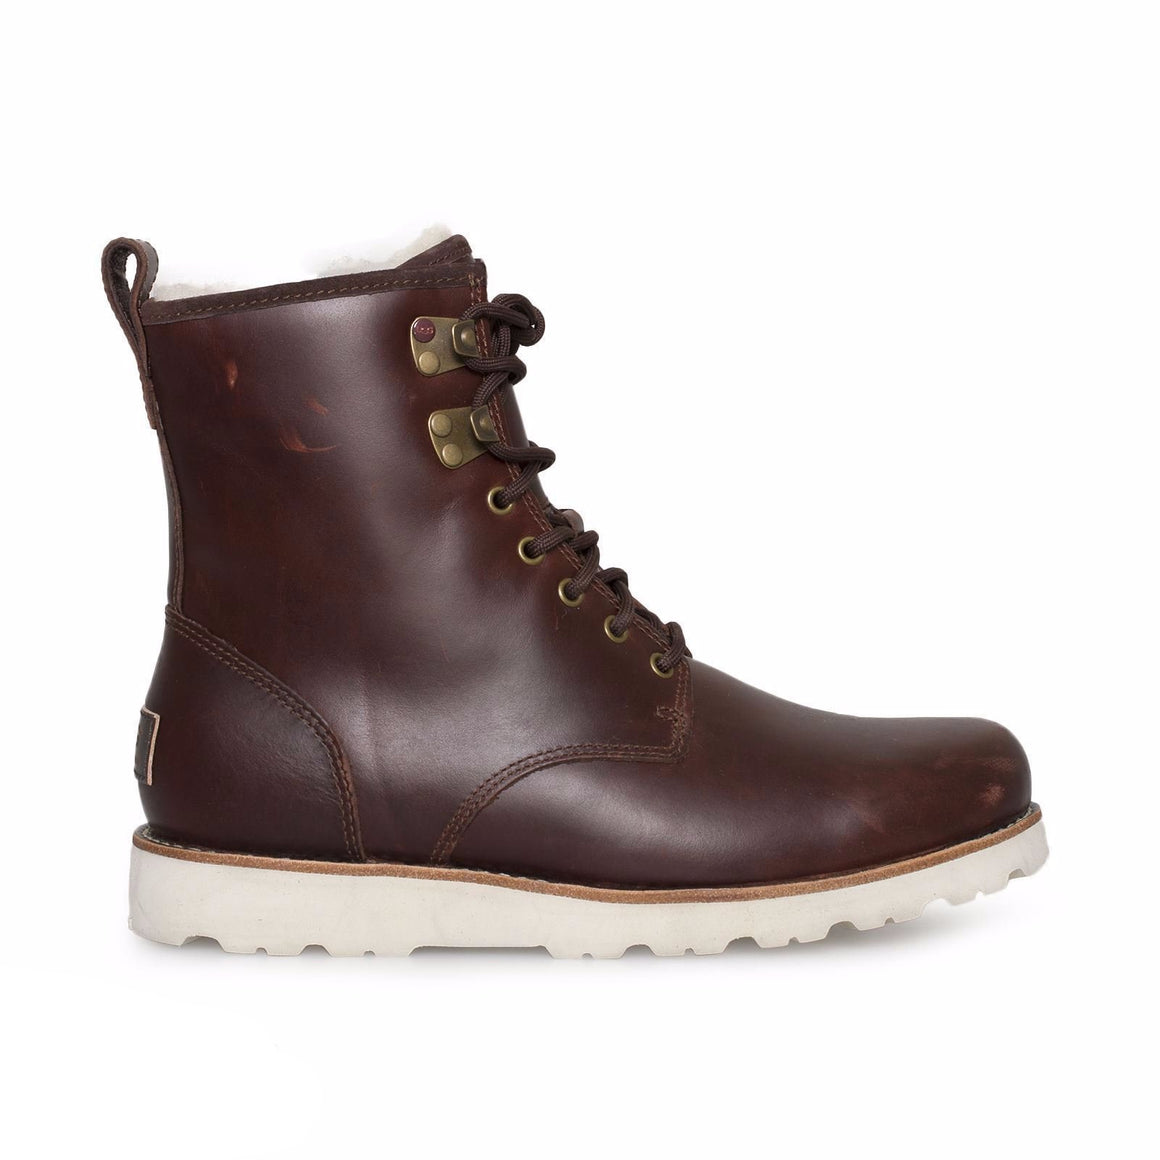 UGG Hannen TL Cordovan Boots